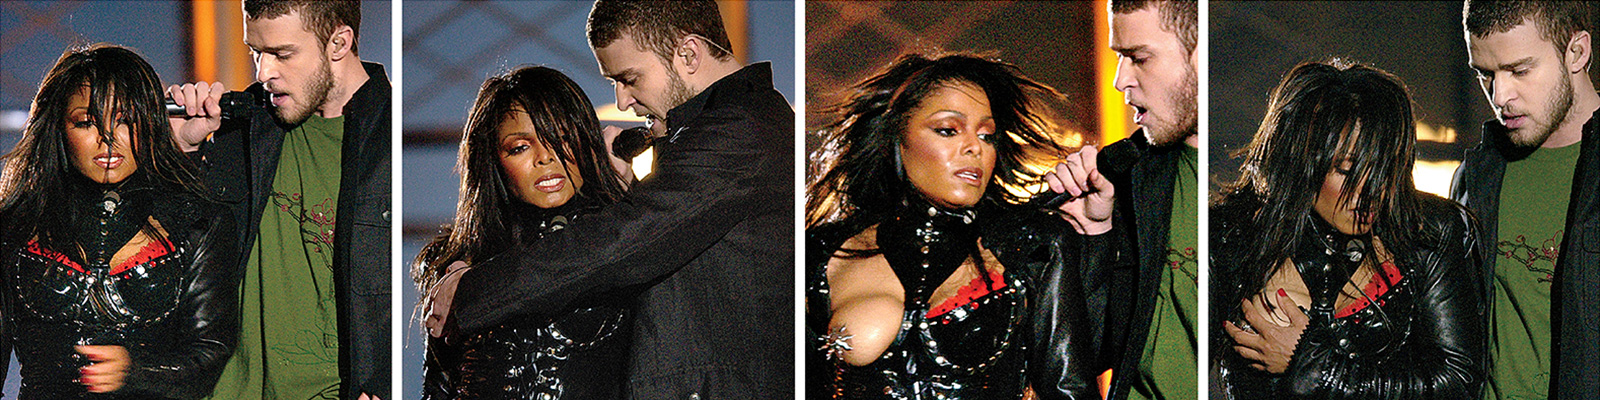 Justin Timberlake asked for forgiveness from Britney Spears and Janet Jackson